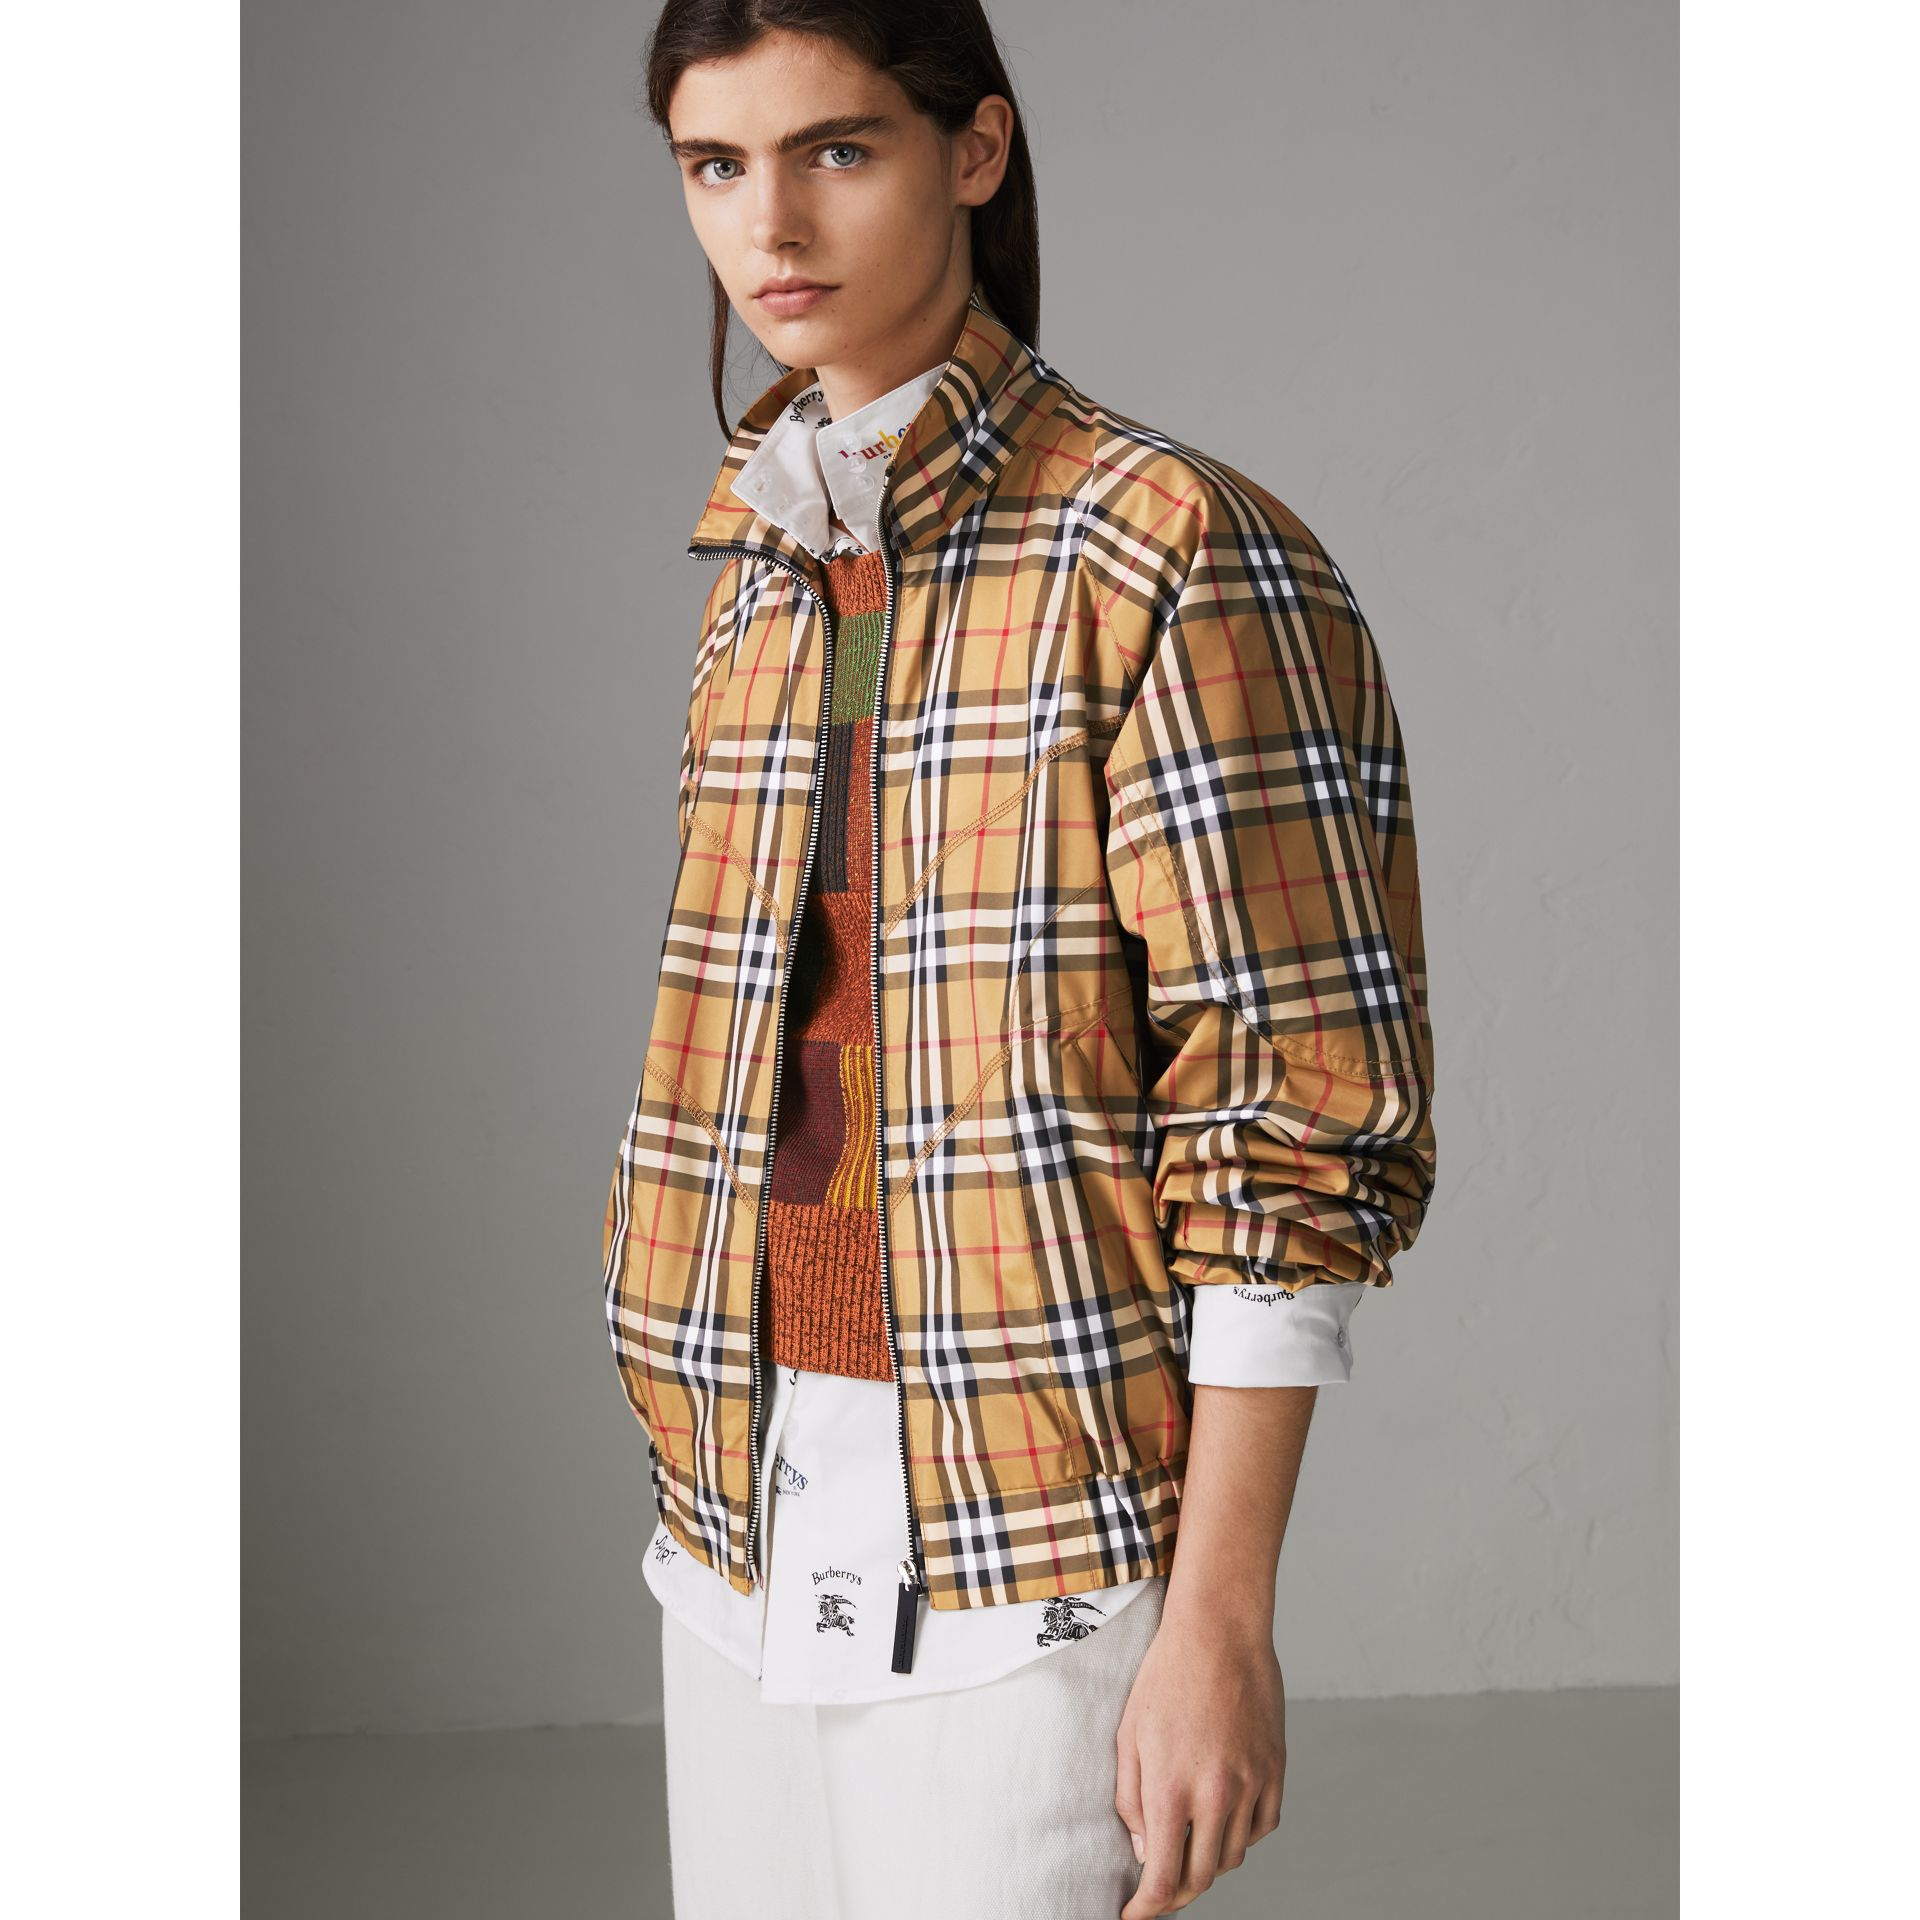 Topstitch Detail Vintage Check Harrington Jacket in Antique Yellow - Women | Burberry United Kingdom - gallery image 5